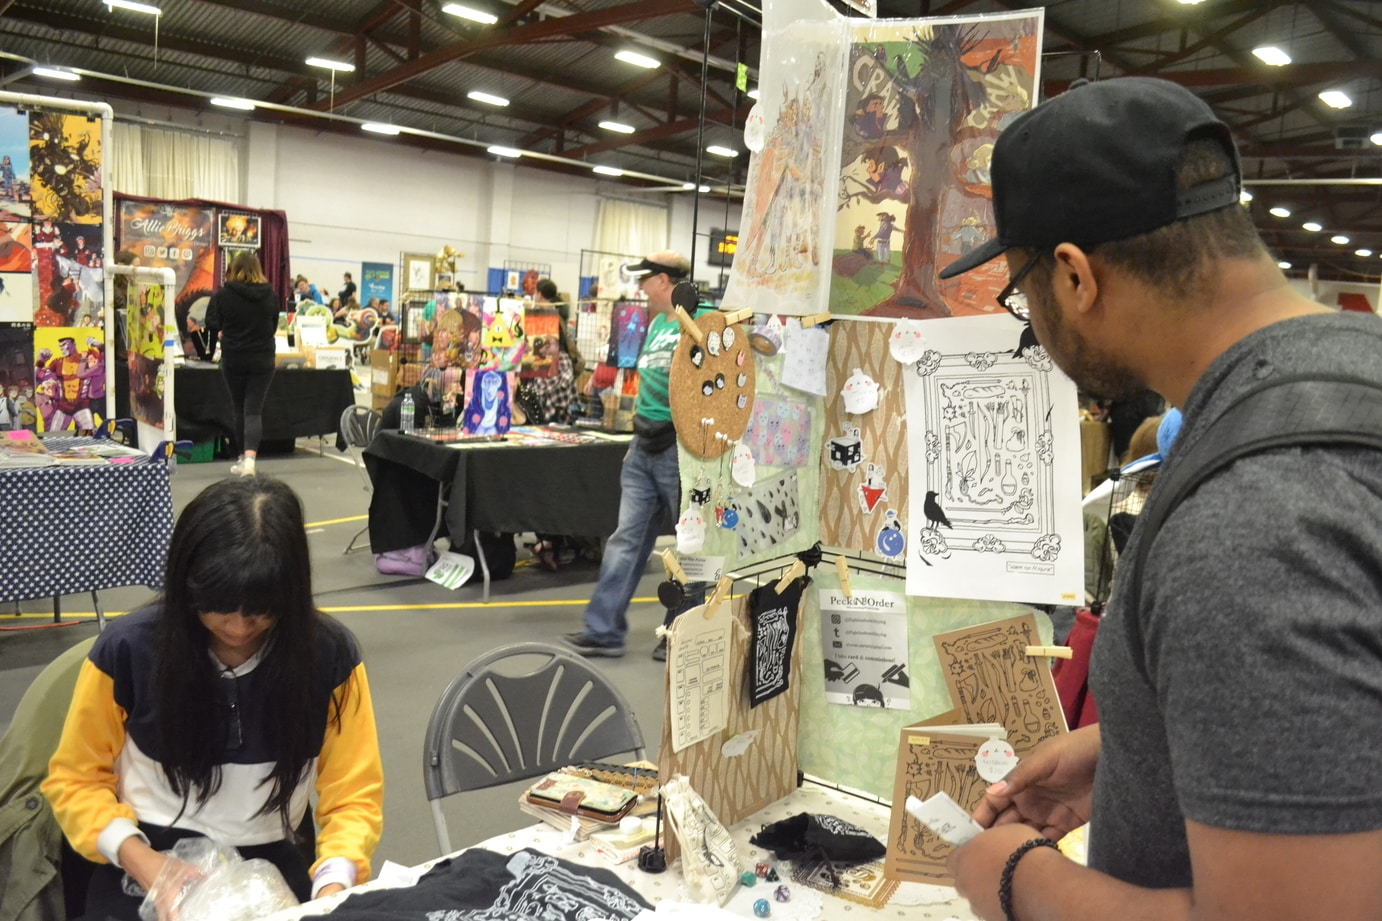 festival artists alley image showing a number of different artist booths with their work on display